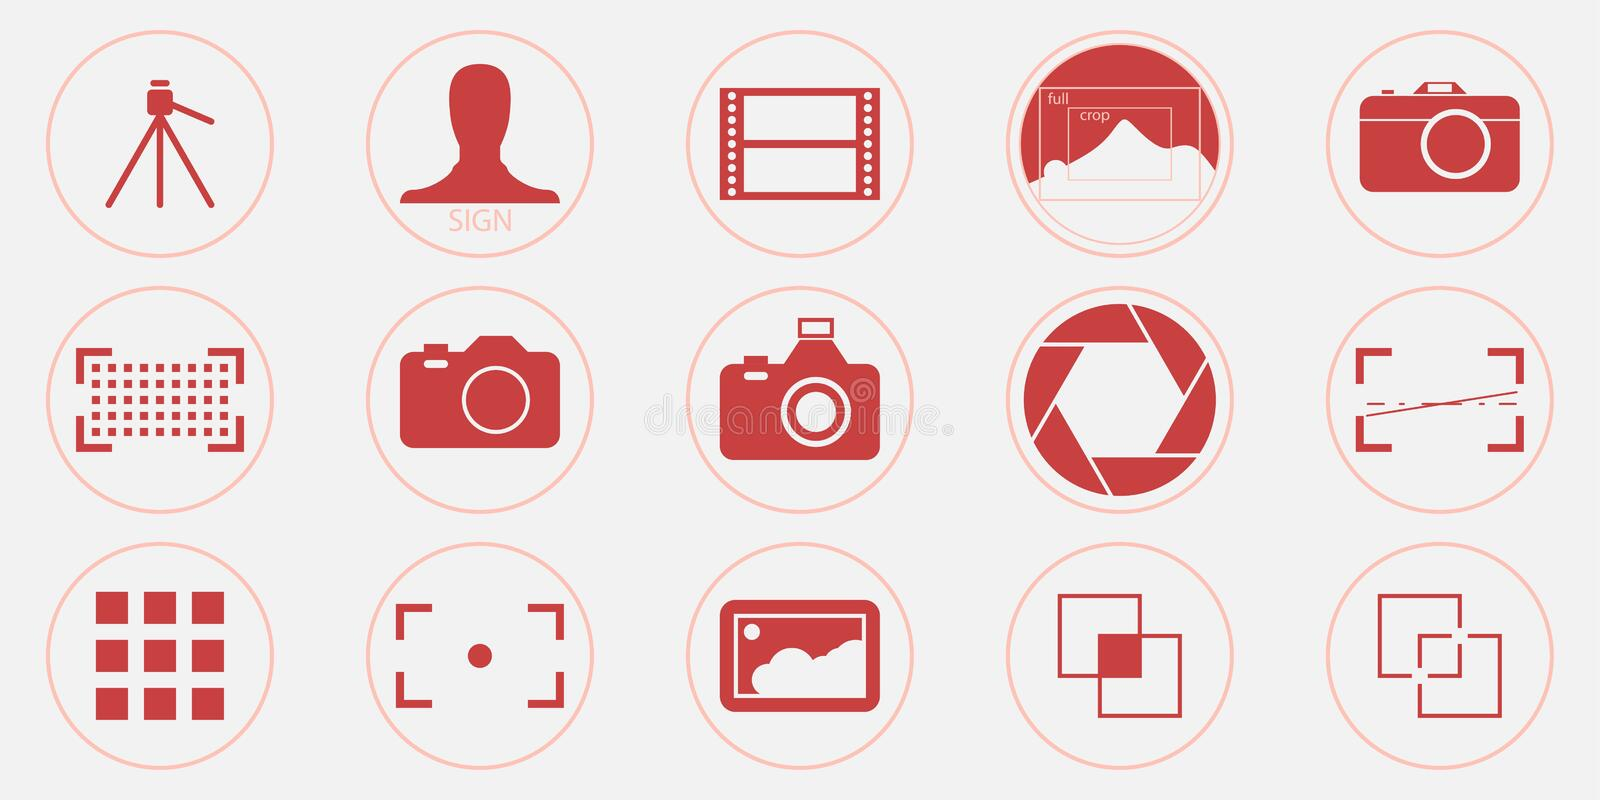 Photography icons set - digital camera illustrations - photo & picture sign and symbols in a trendy coral color. Thin line vector. Eps 10 royalty free illustration